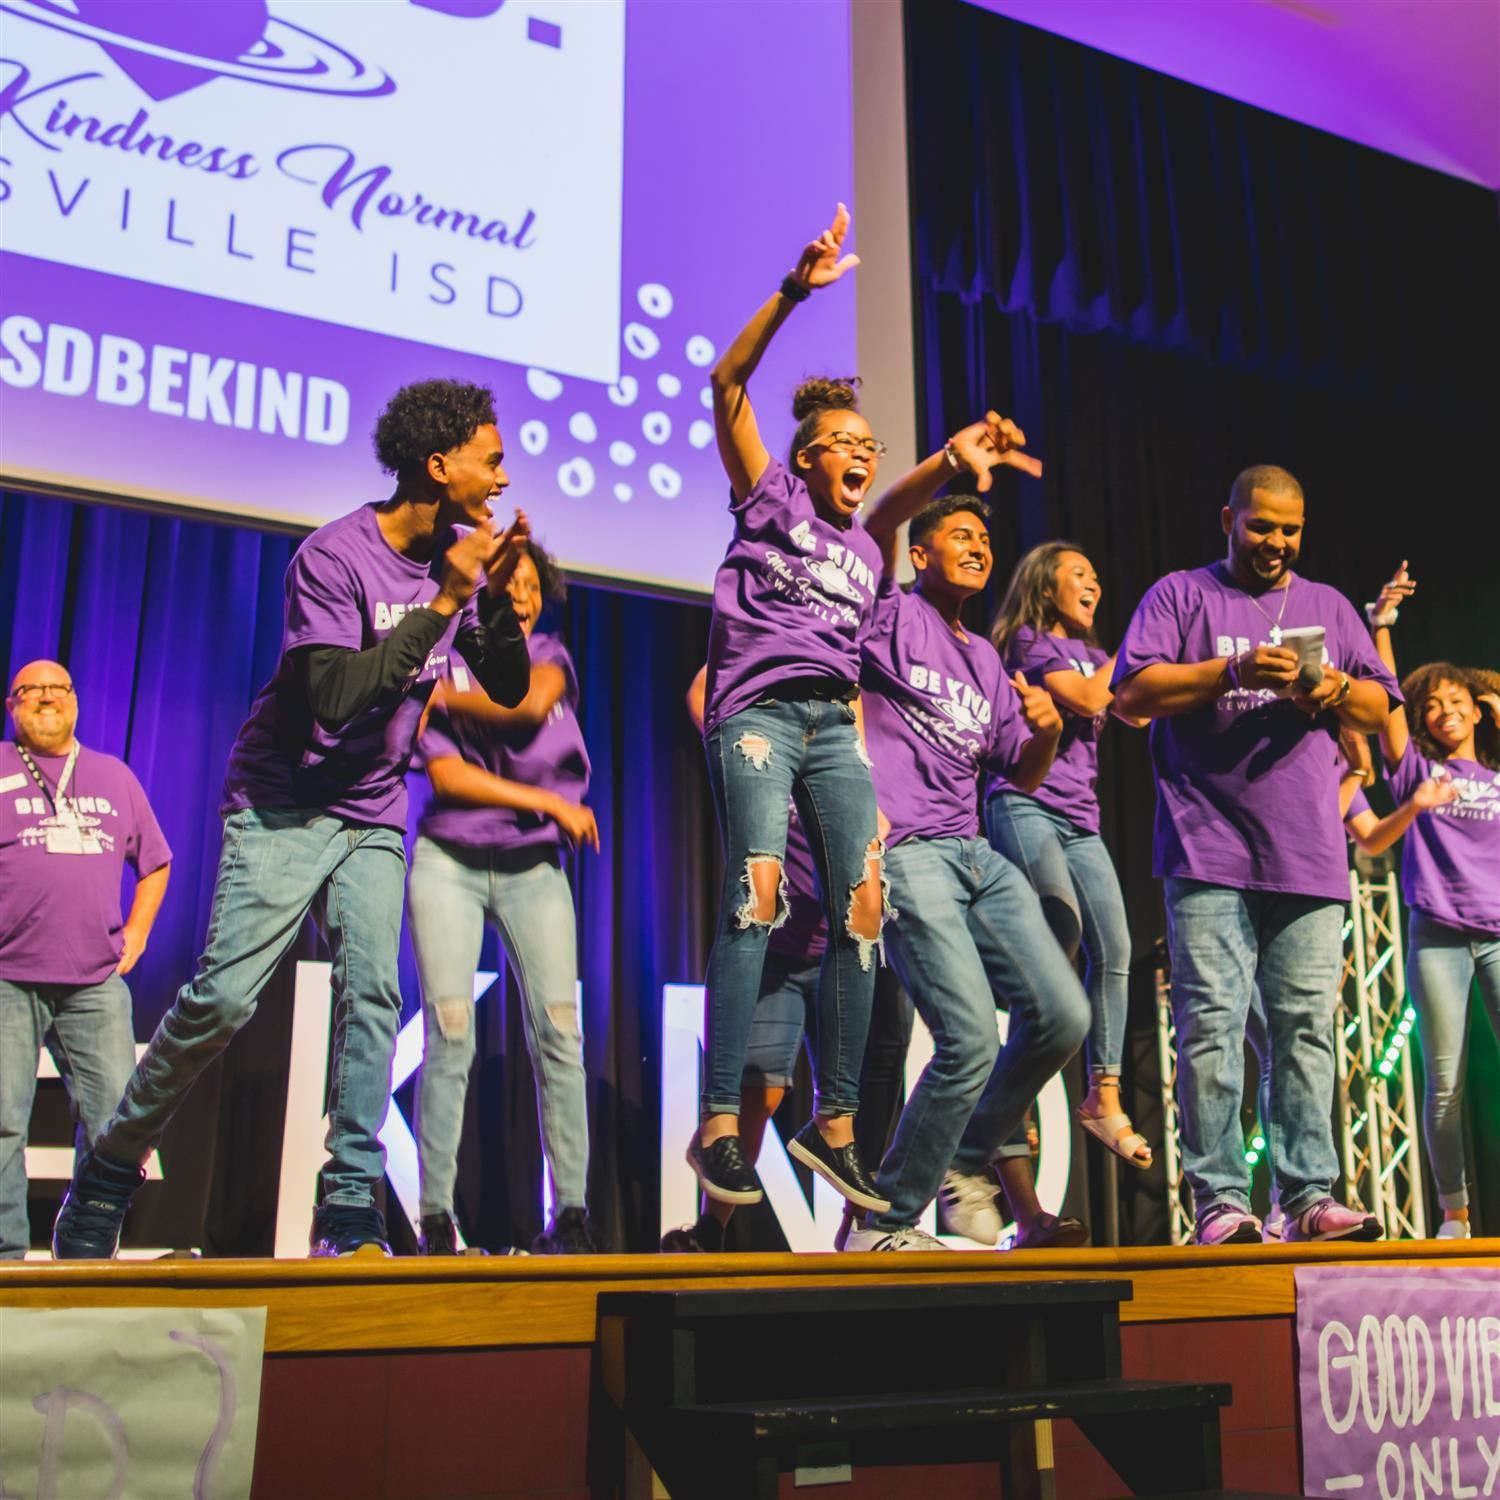 PHOTOS: LISD Kindness Convocation Another Success